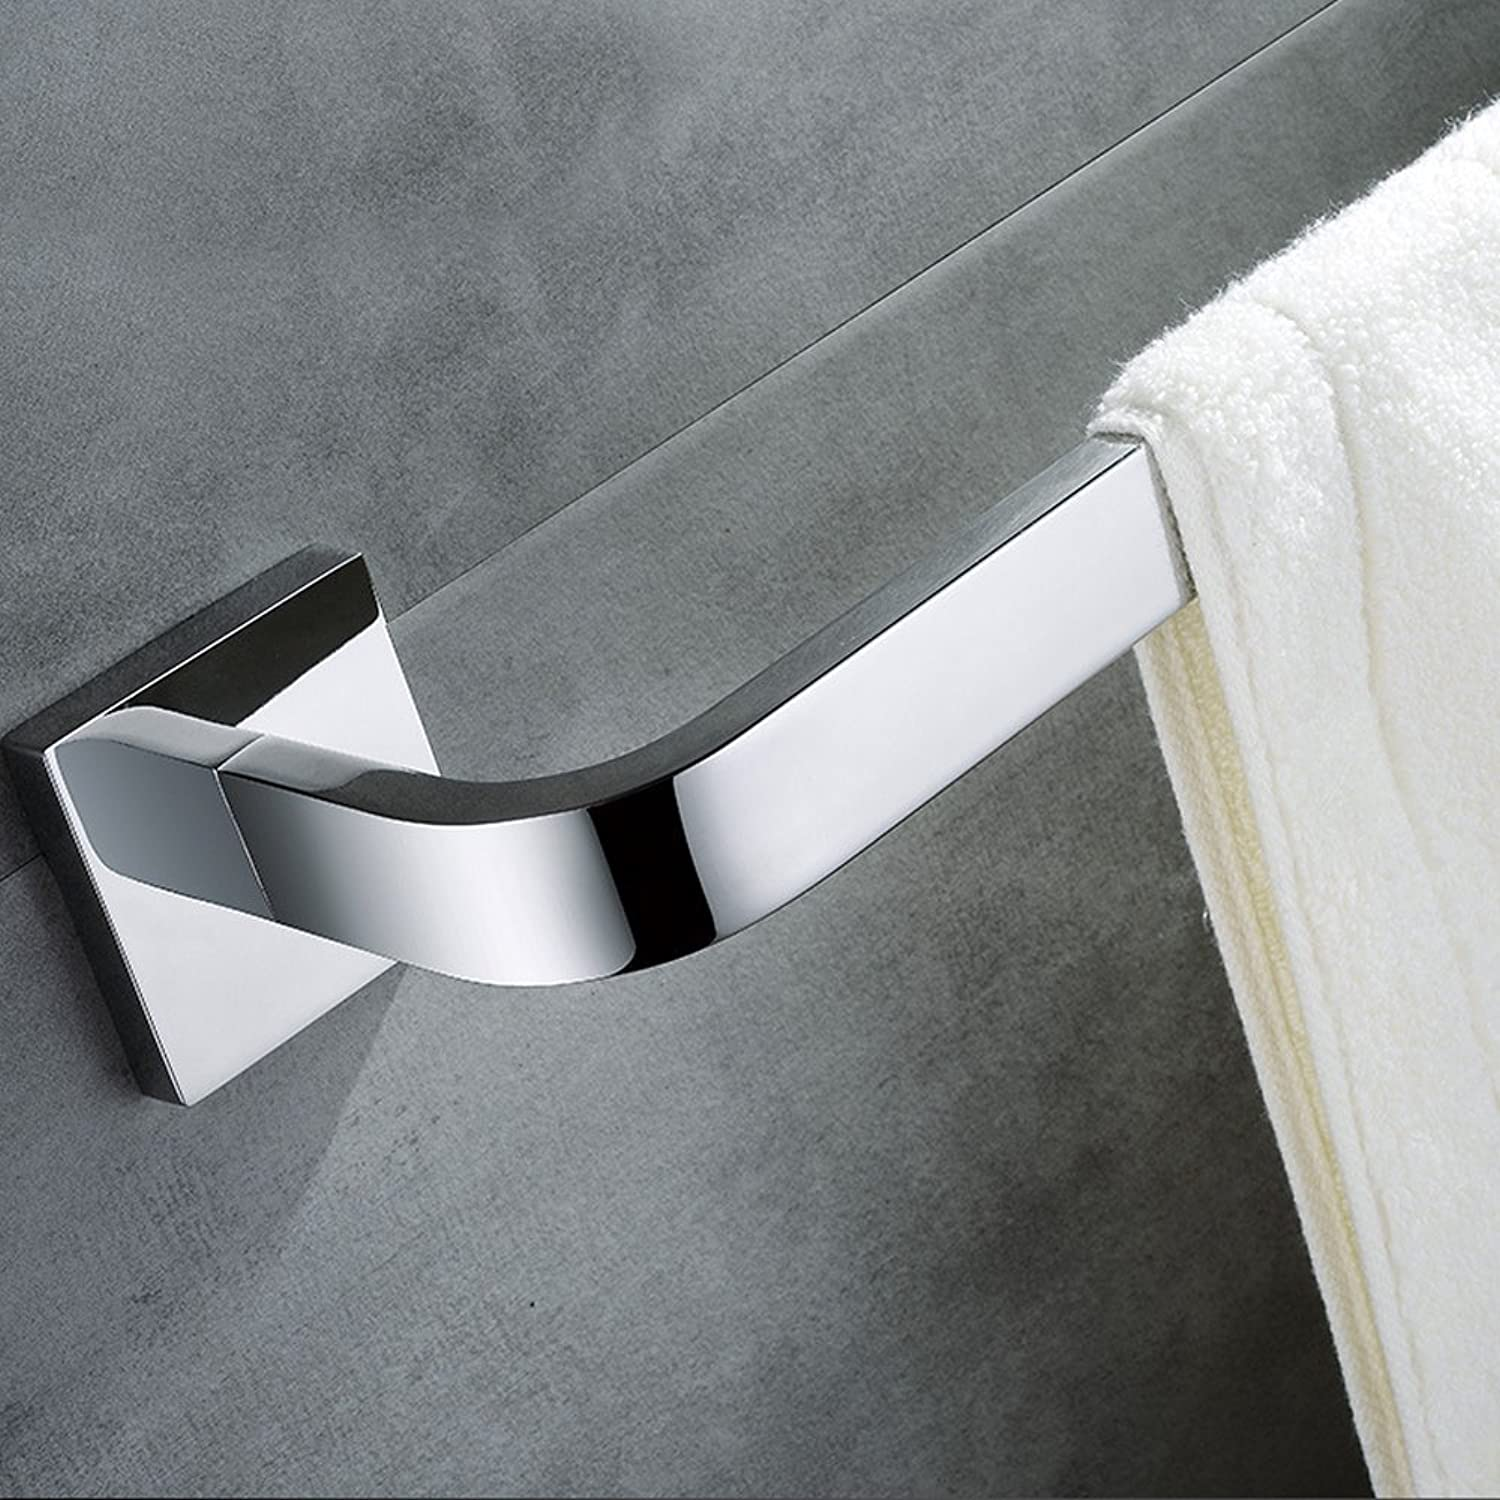 Leyden TM Wall Mounted 304 Stainless Steel Square Single Towel Bar  Towel Rail For Bathroom Chrome